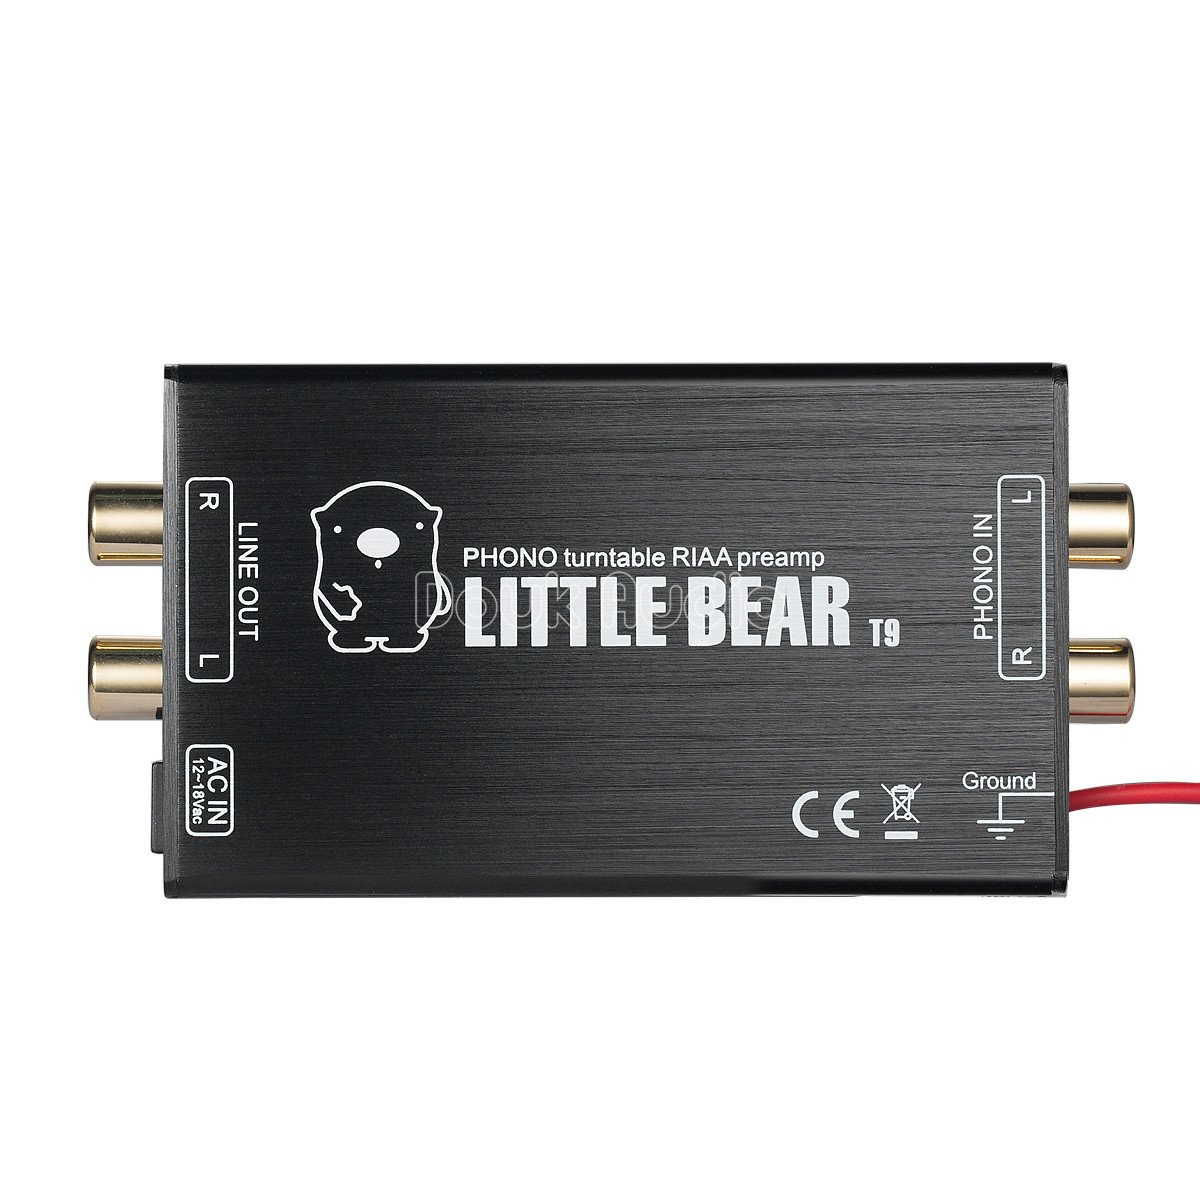 Nobsound Little Bear T9 Mini Phono Stage Preamp MM Moving Magnet Turntables Pre-Amplifier; RIAA MM HiFi Stereo LP Vinyl Preamp (Aluminium Alloy Shell) 4330977361